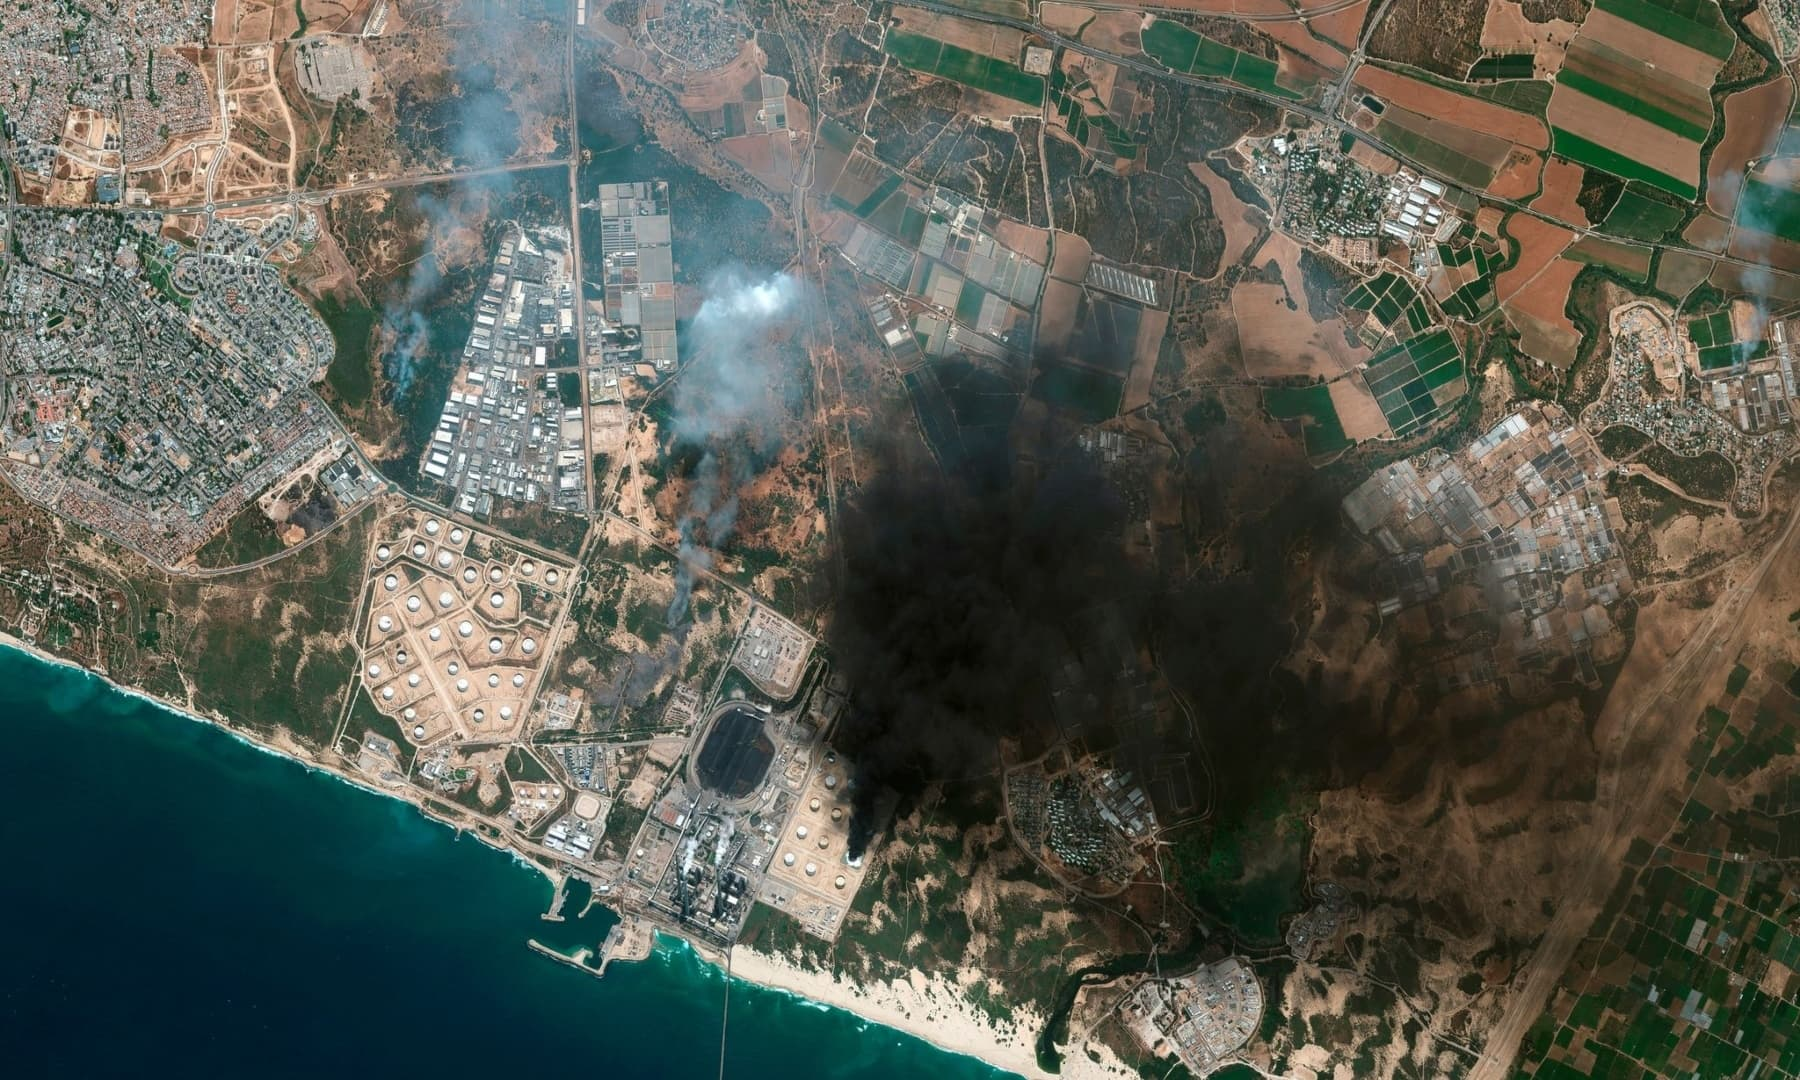 This satellite image provided by Maxar Technologies shows a fire at an oil tank farm in Ashkelon, Israel, May 12, 2021. — AP